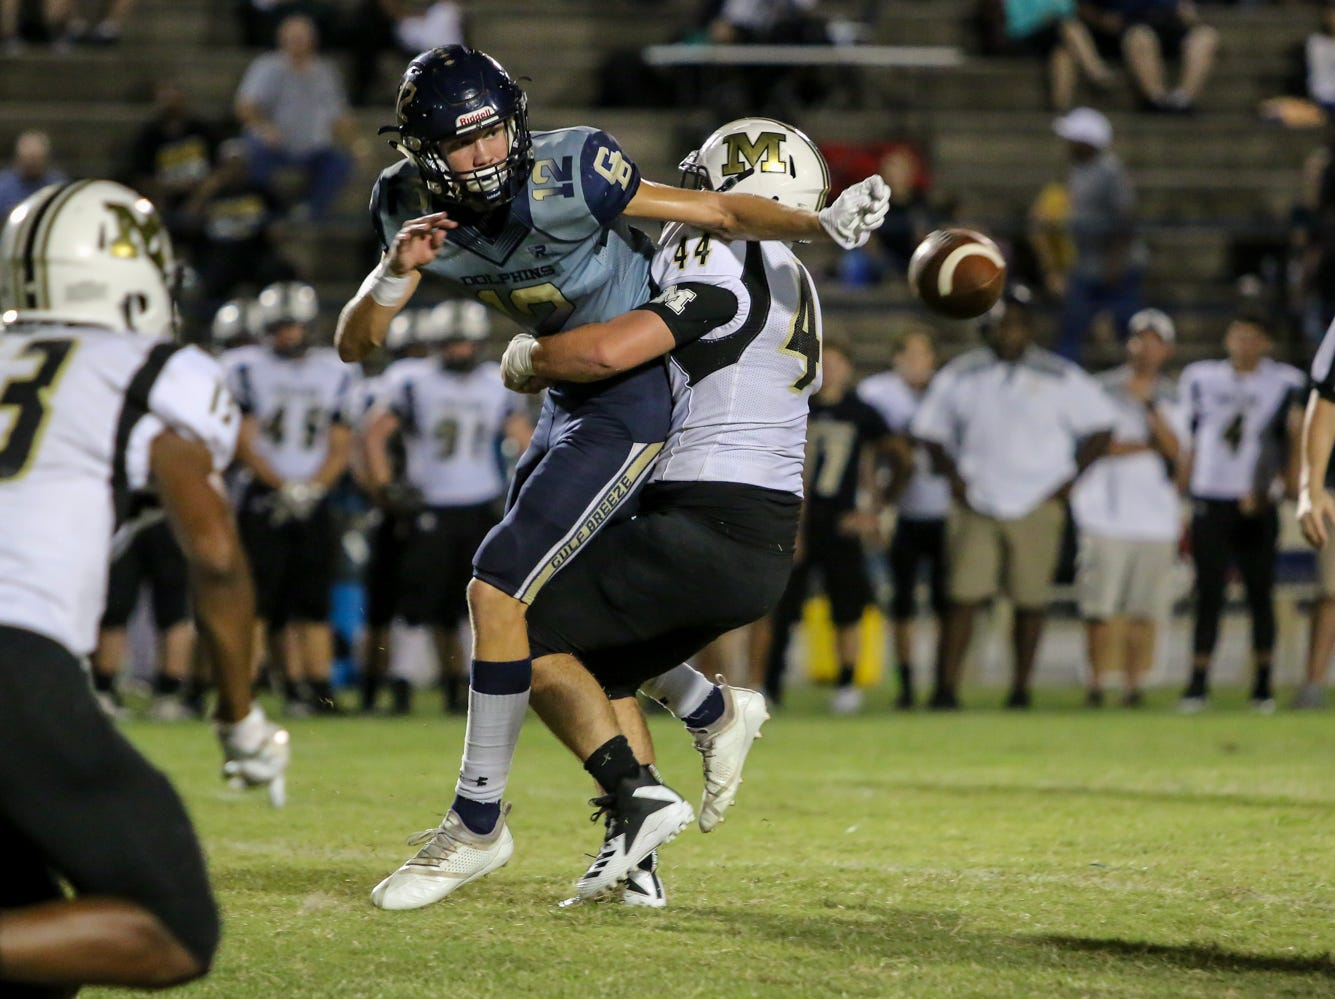 On the first play after starting quarterback Dylon Kelley was injured and left the game, Gulf Breeze's Cooper Harris (12) makes an impressive backwards toss to running back Tyler Dittmer, not pictured, to avoid a sack by Milton's Trevor Lunsford (44) at Gulf Breeze High School on Friday, September 28, 2018.